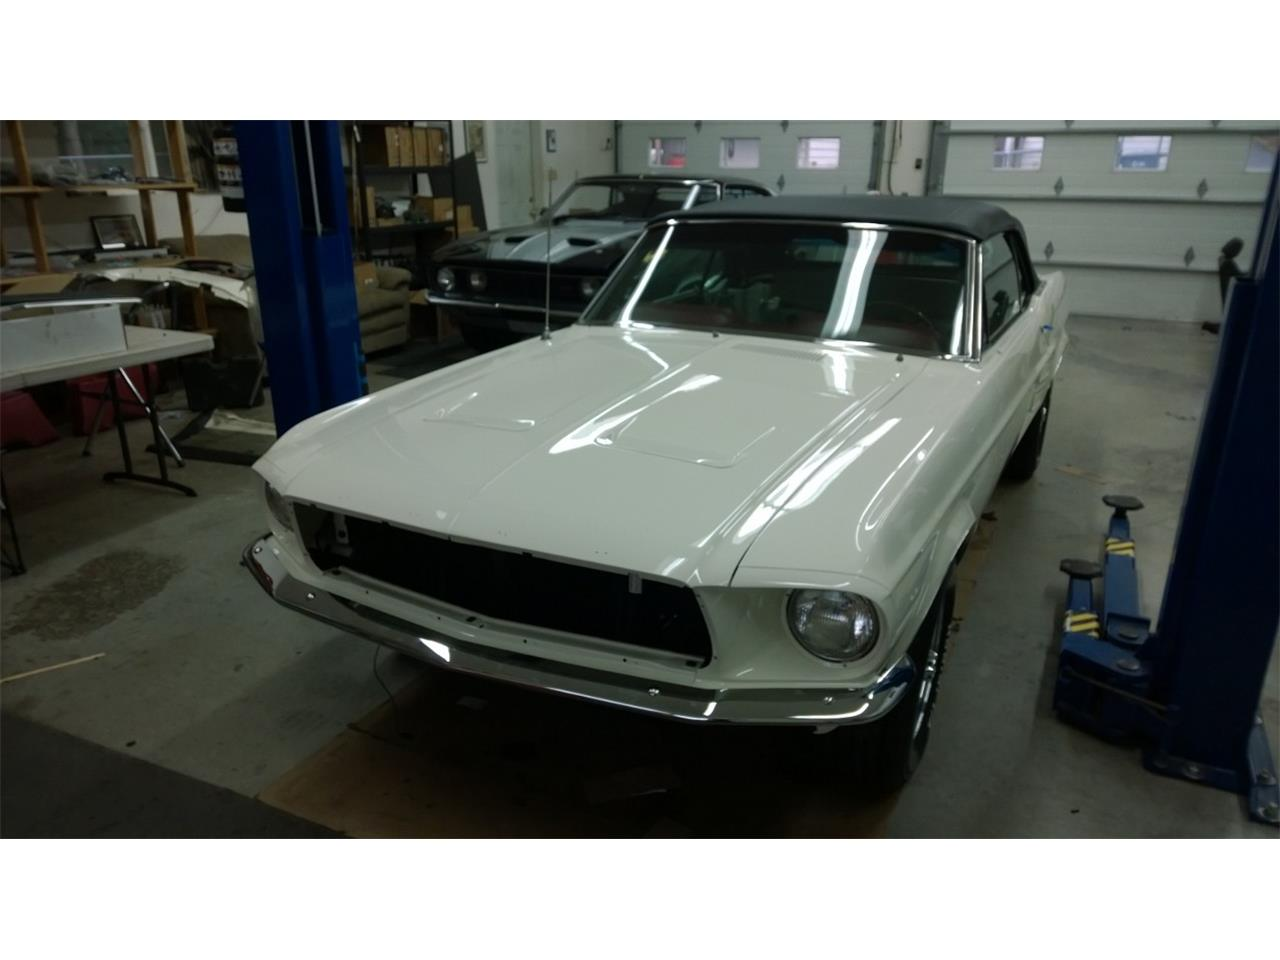 Large Picture of 1967 Ford Mustang GT located in QLD - $120,000.00 Offered by a Private Seller - QADD